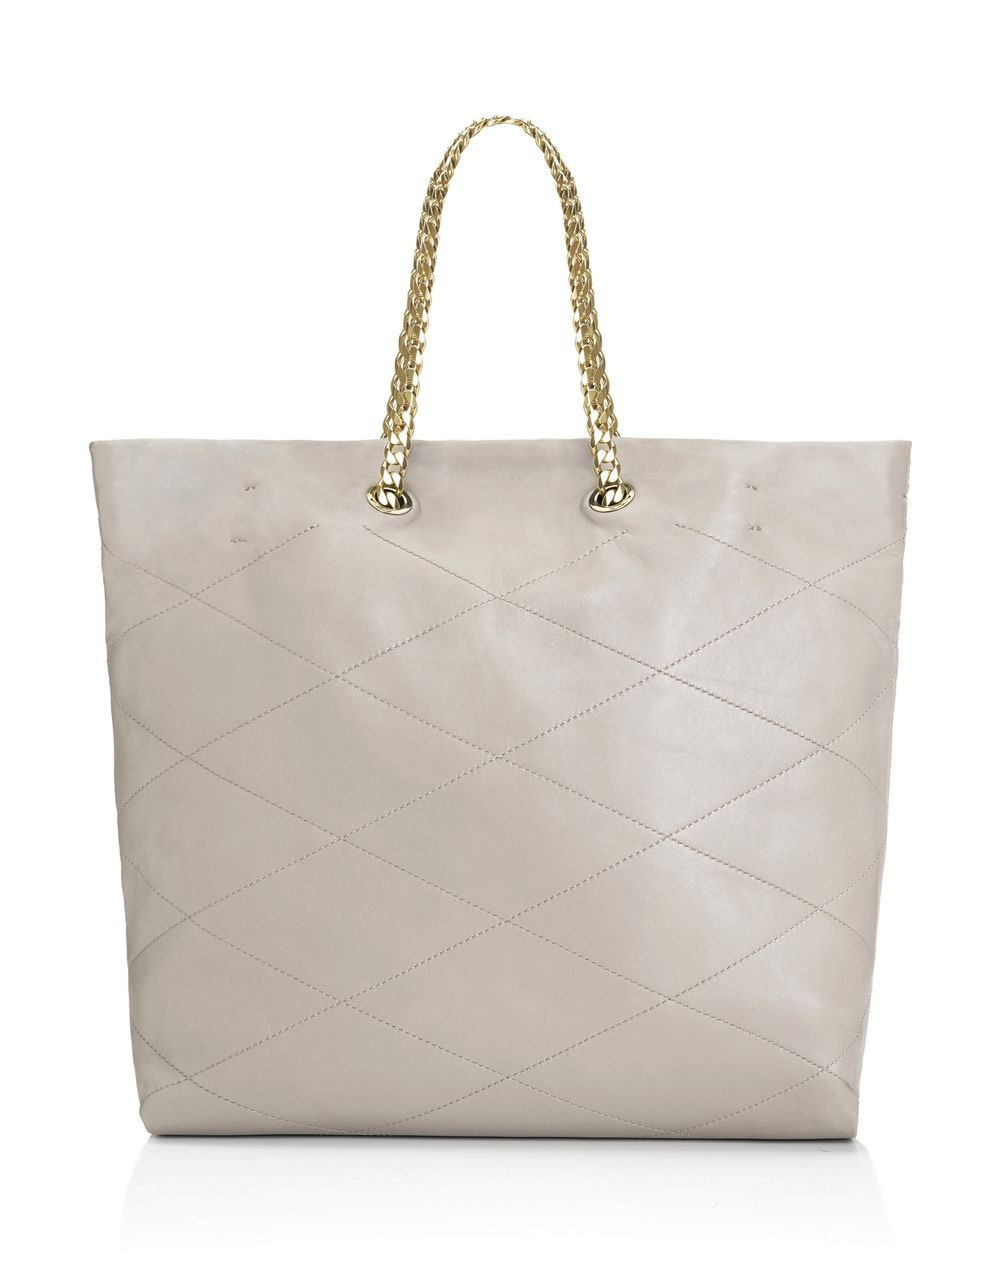 SUGAR CARRY ME BAG IN LAMBSKIN  - Lanvin